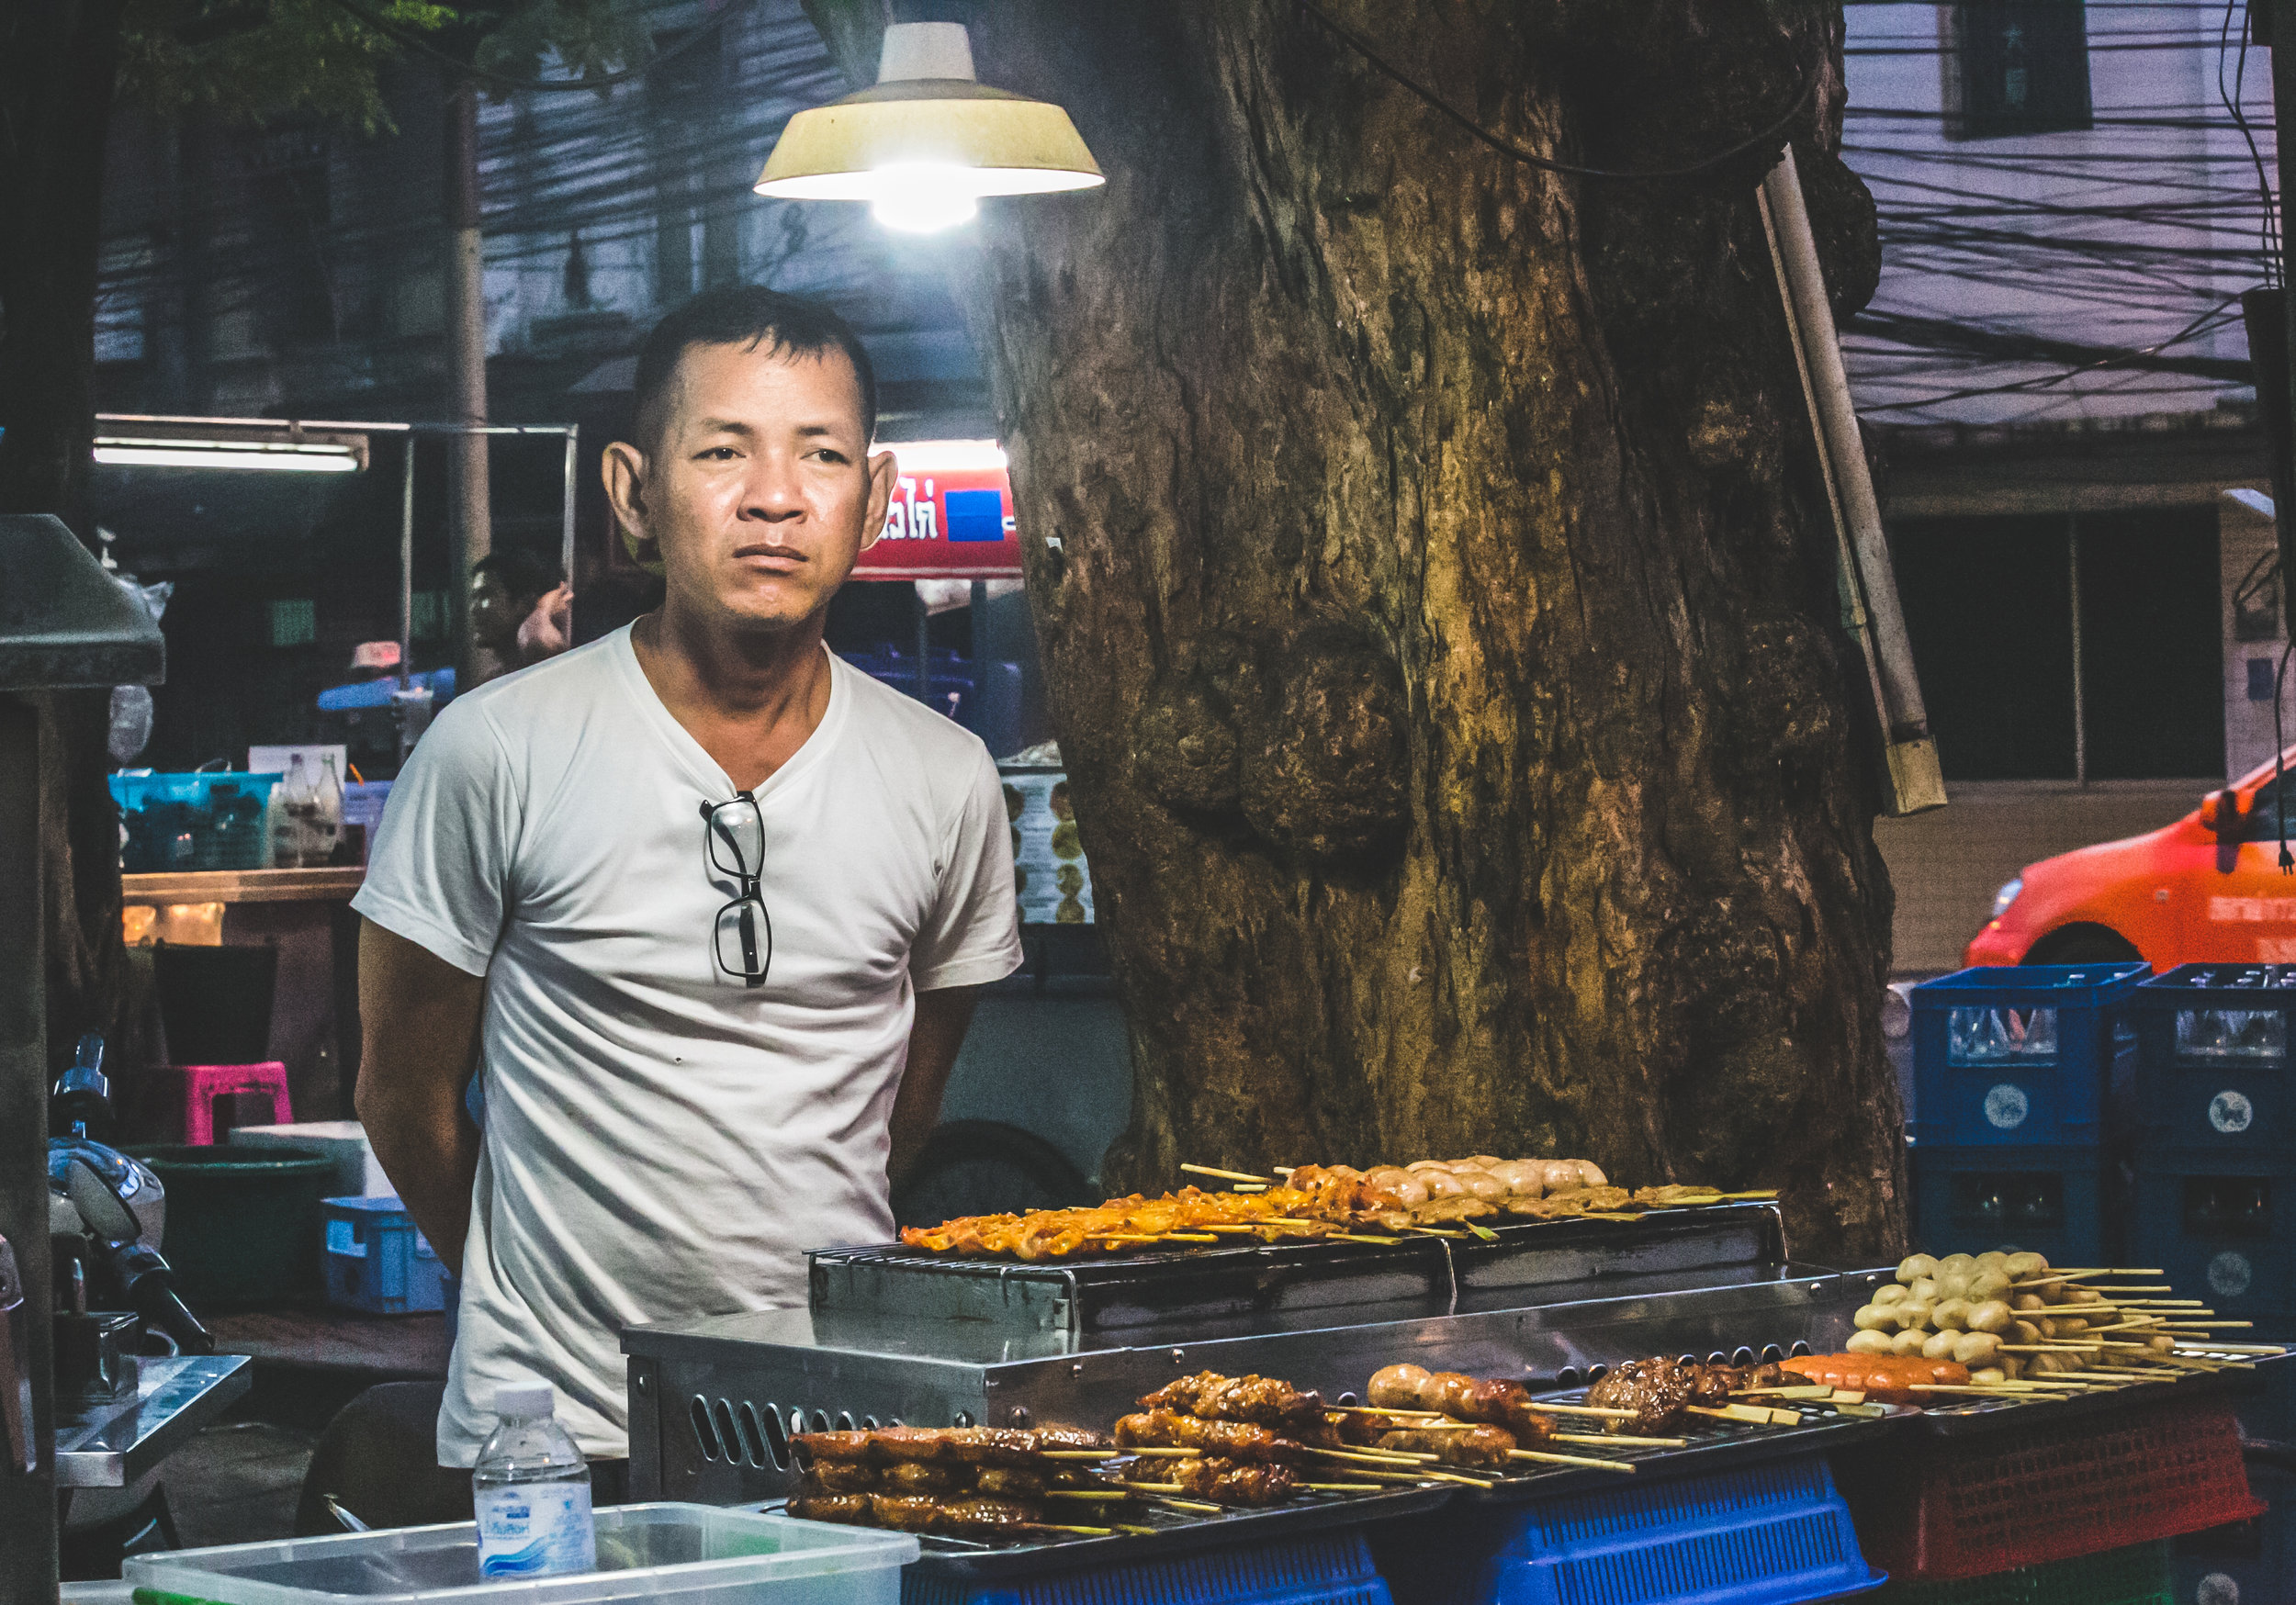 Nipon, a 48 year old street vendor in downtown Bangkok, sells assorted grilled meats on a busy street corner. Nipon fought hard for the rights to this location, and makes a great return on his investment. Each day he makes around 3,000 baht ($95usd), an impressive daily wage for Bangkok.